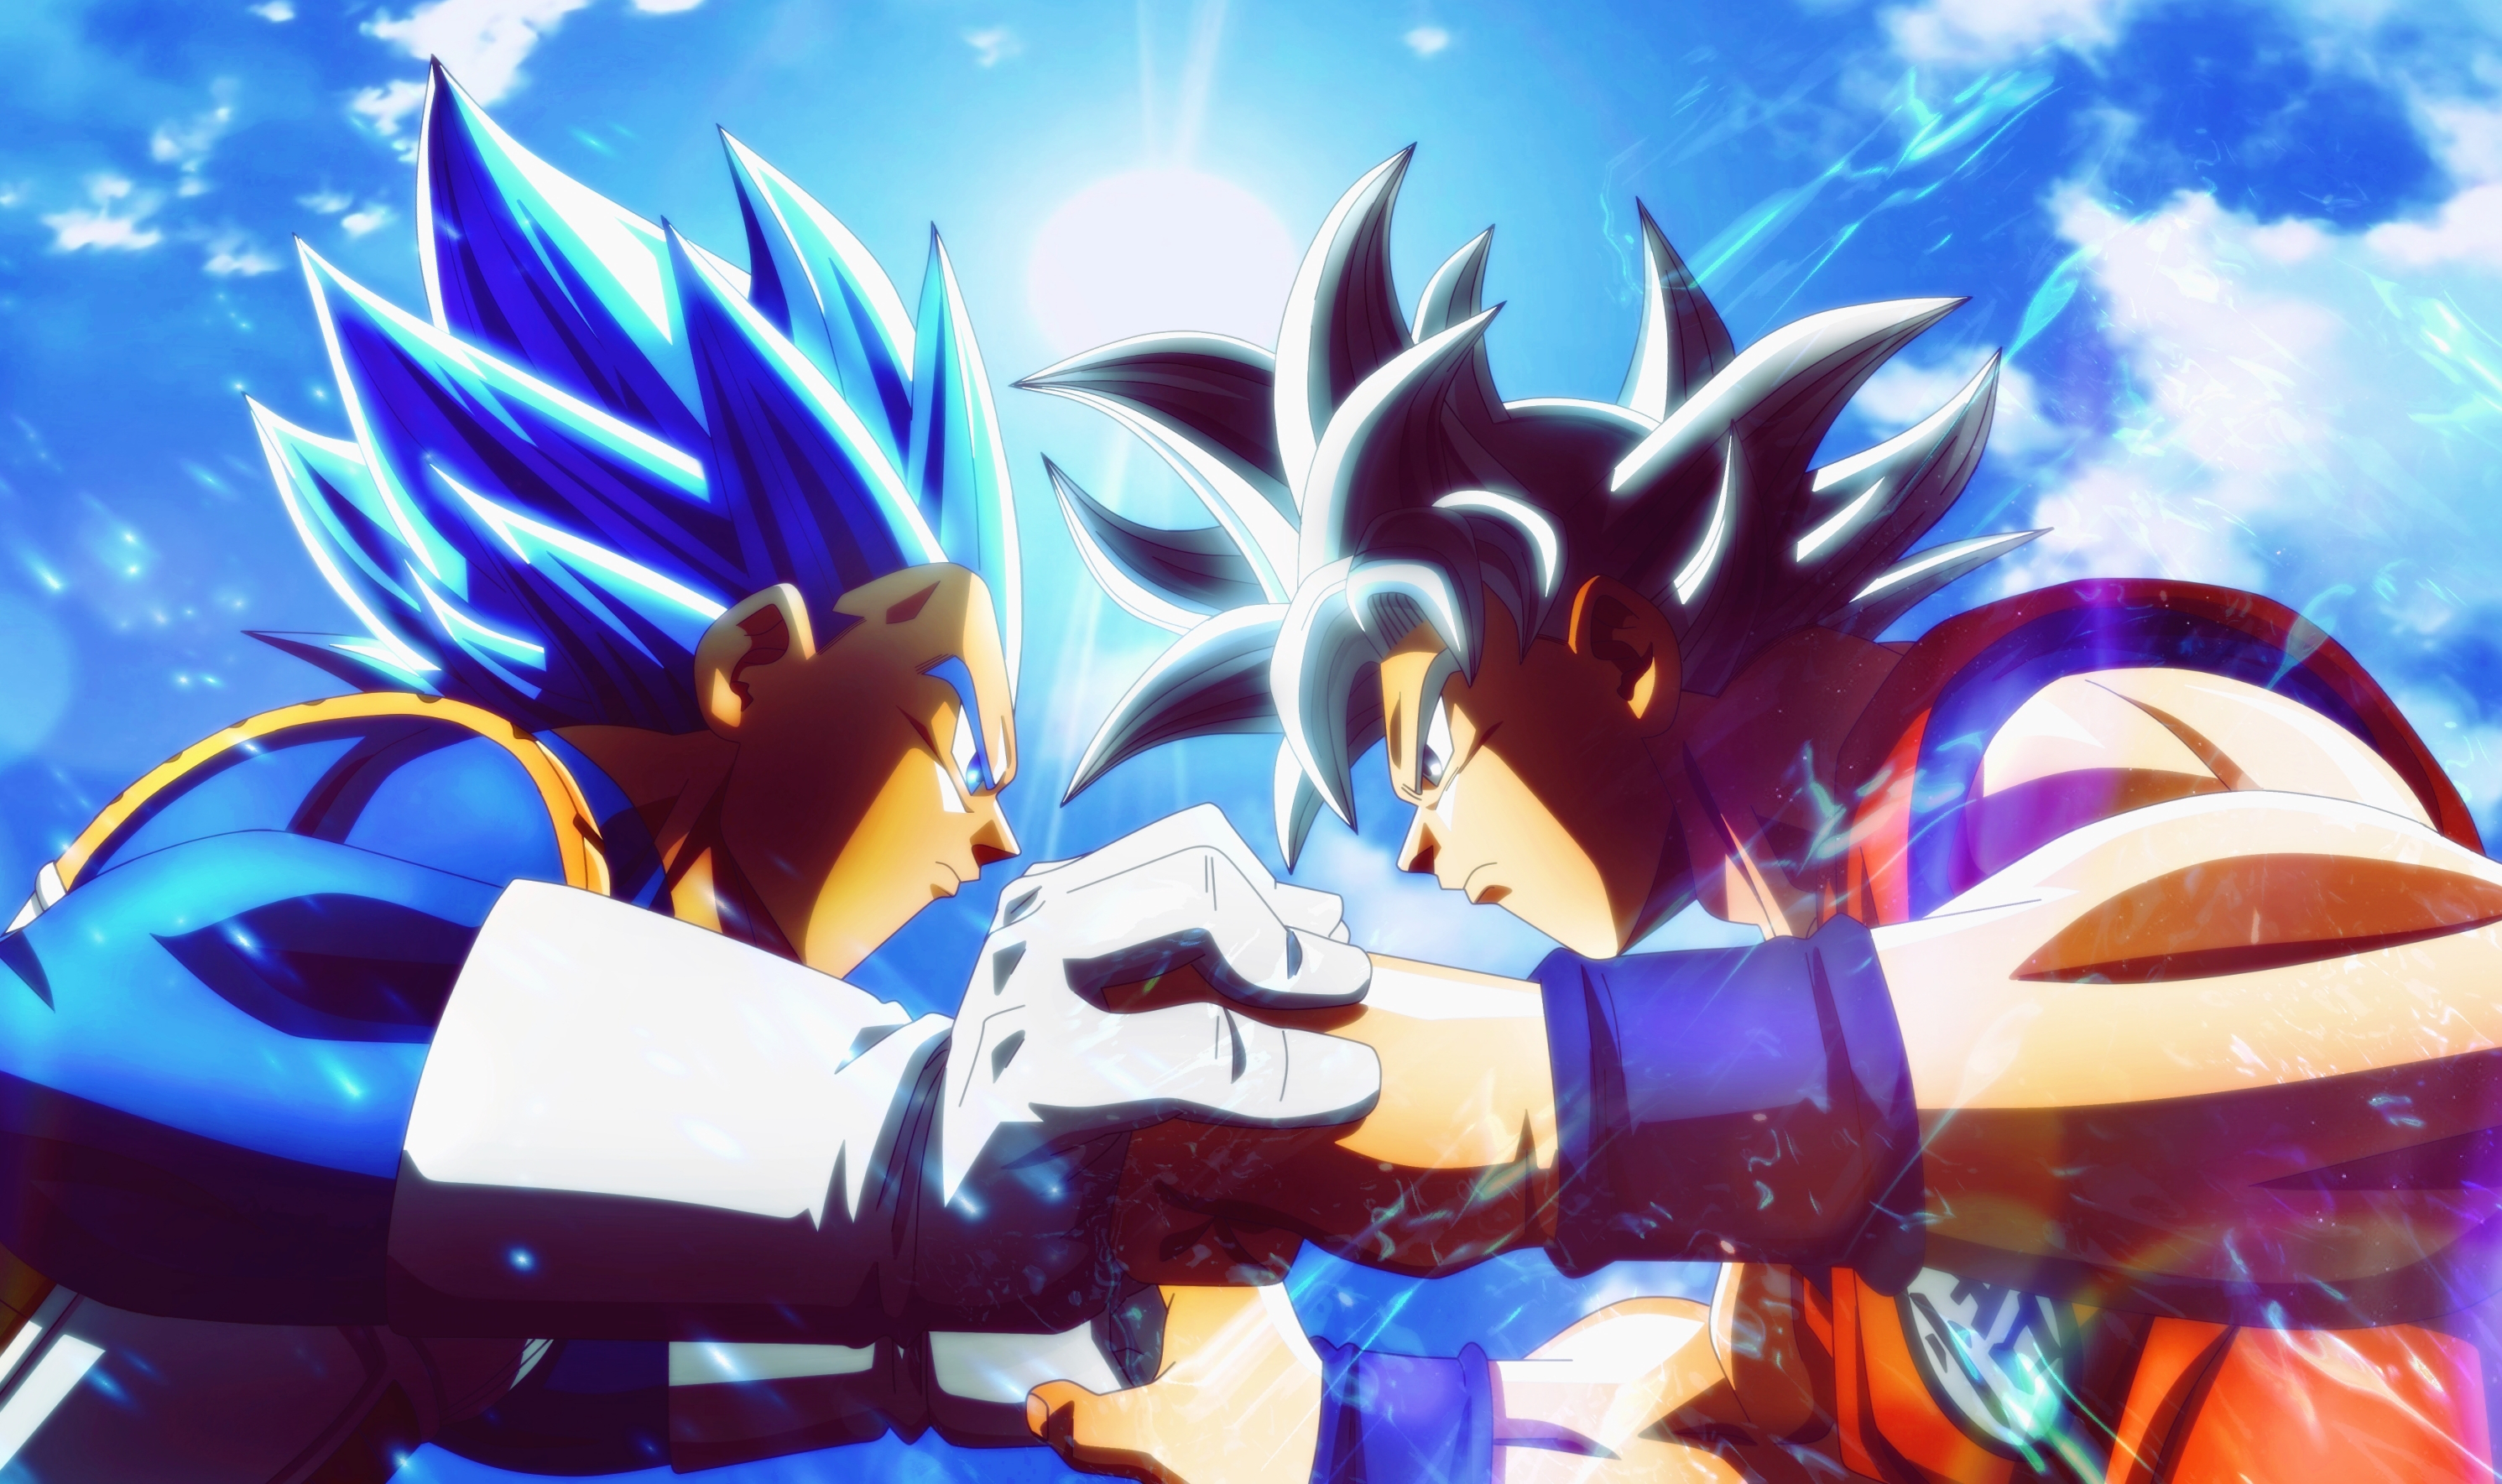 Goku Vs Vegeta Wallpaper Vegeta Vs Goku Wallpaper Hd 2982x1769 Download Hd Wallpaper Wallpapertip